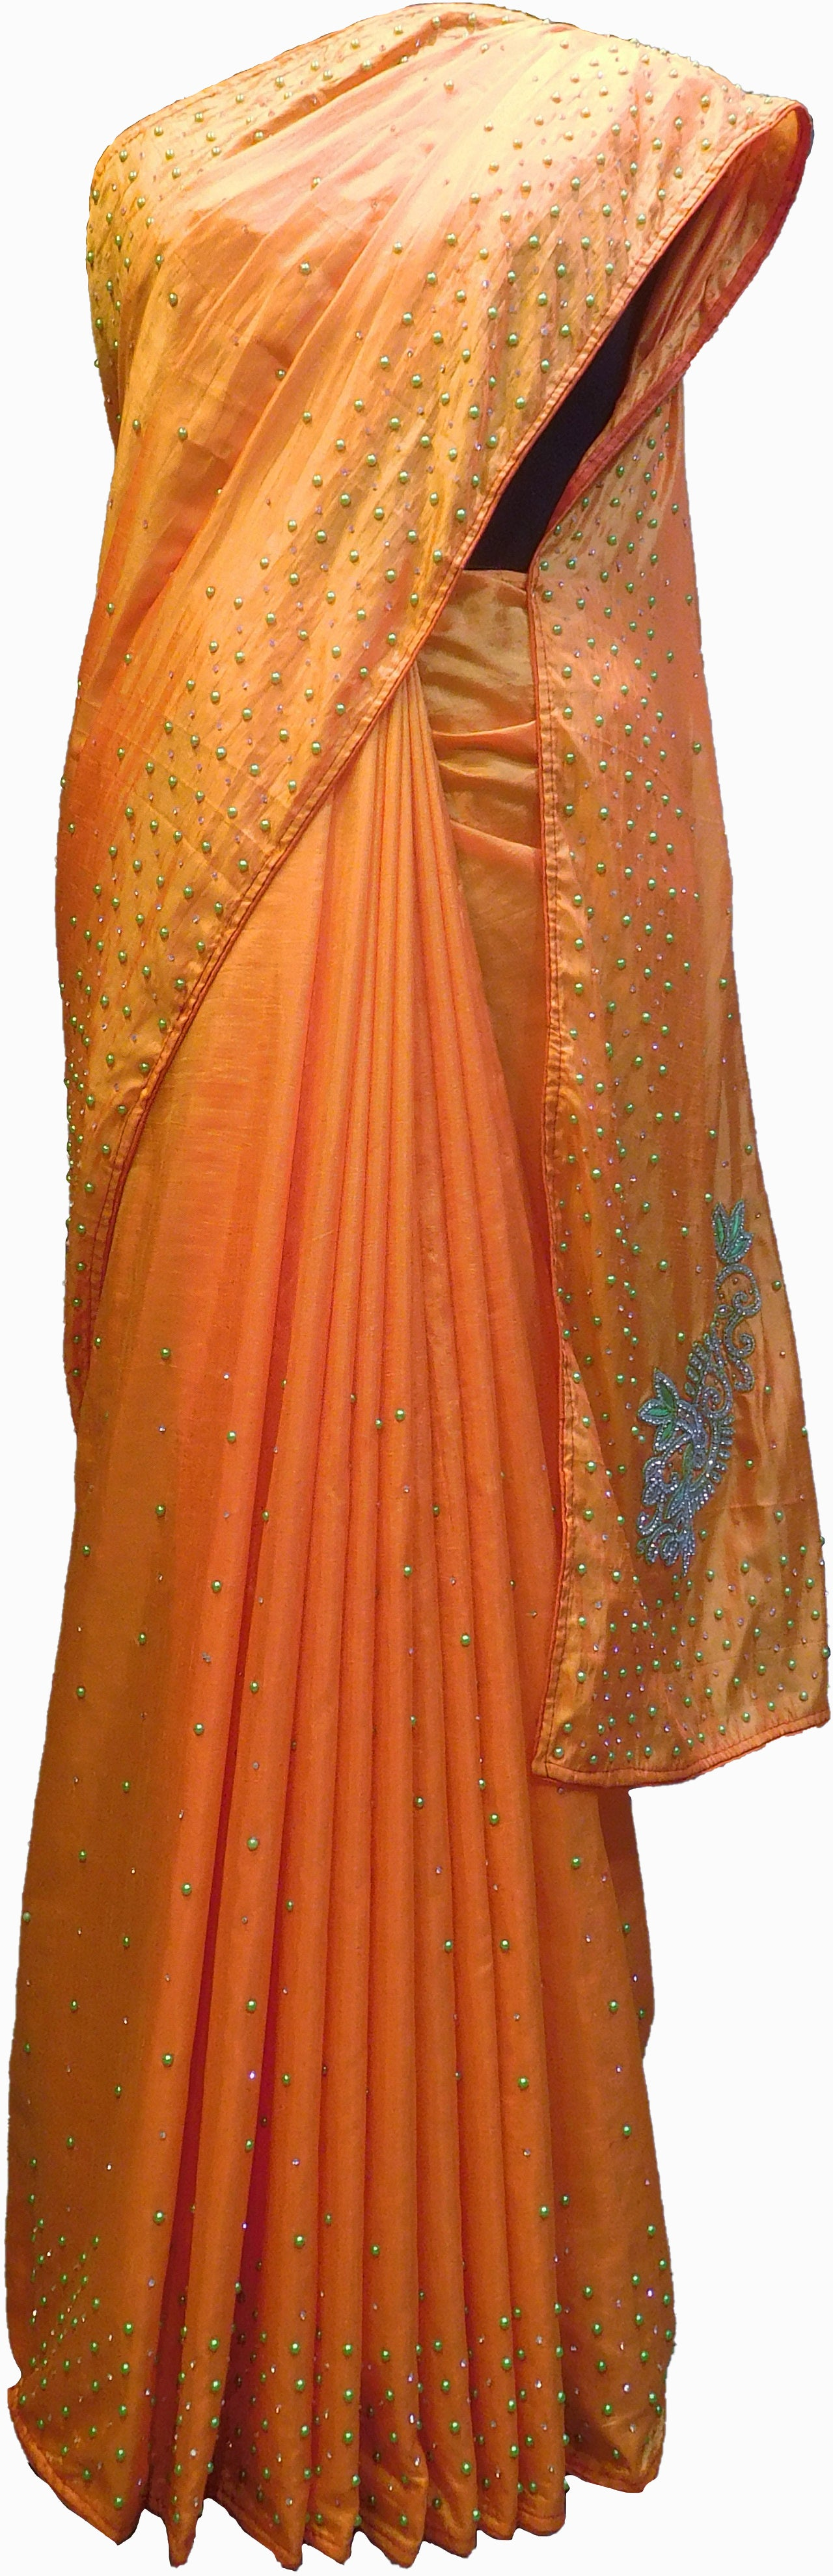 SMSAREE Orange Designer Wedding Partywear Silk Pearl Cutdana Thread Beads & Stone Hand Embroidery Work Bridal Saree Sari With Blouse Piece F175